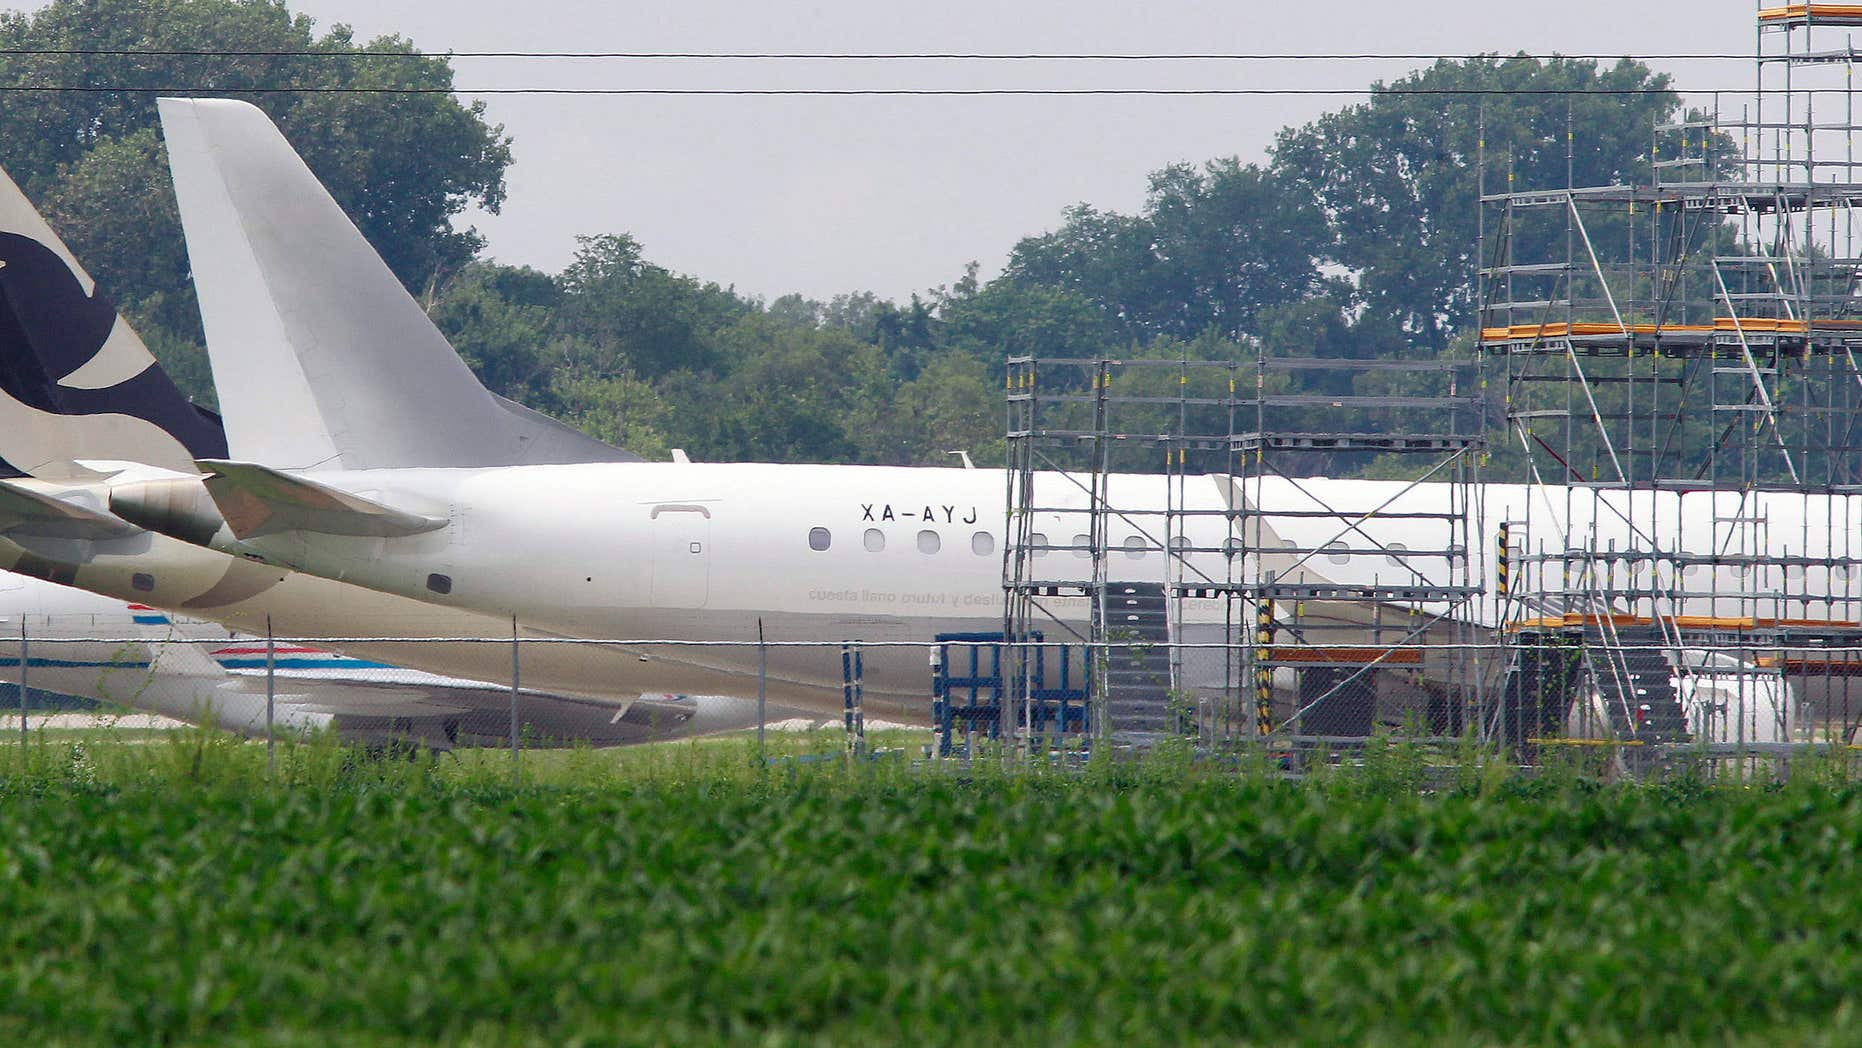 Aug. 5, 2015: Jets are shown parked at St. Louis Downtown Airport in Sauget, Ill.